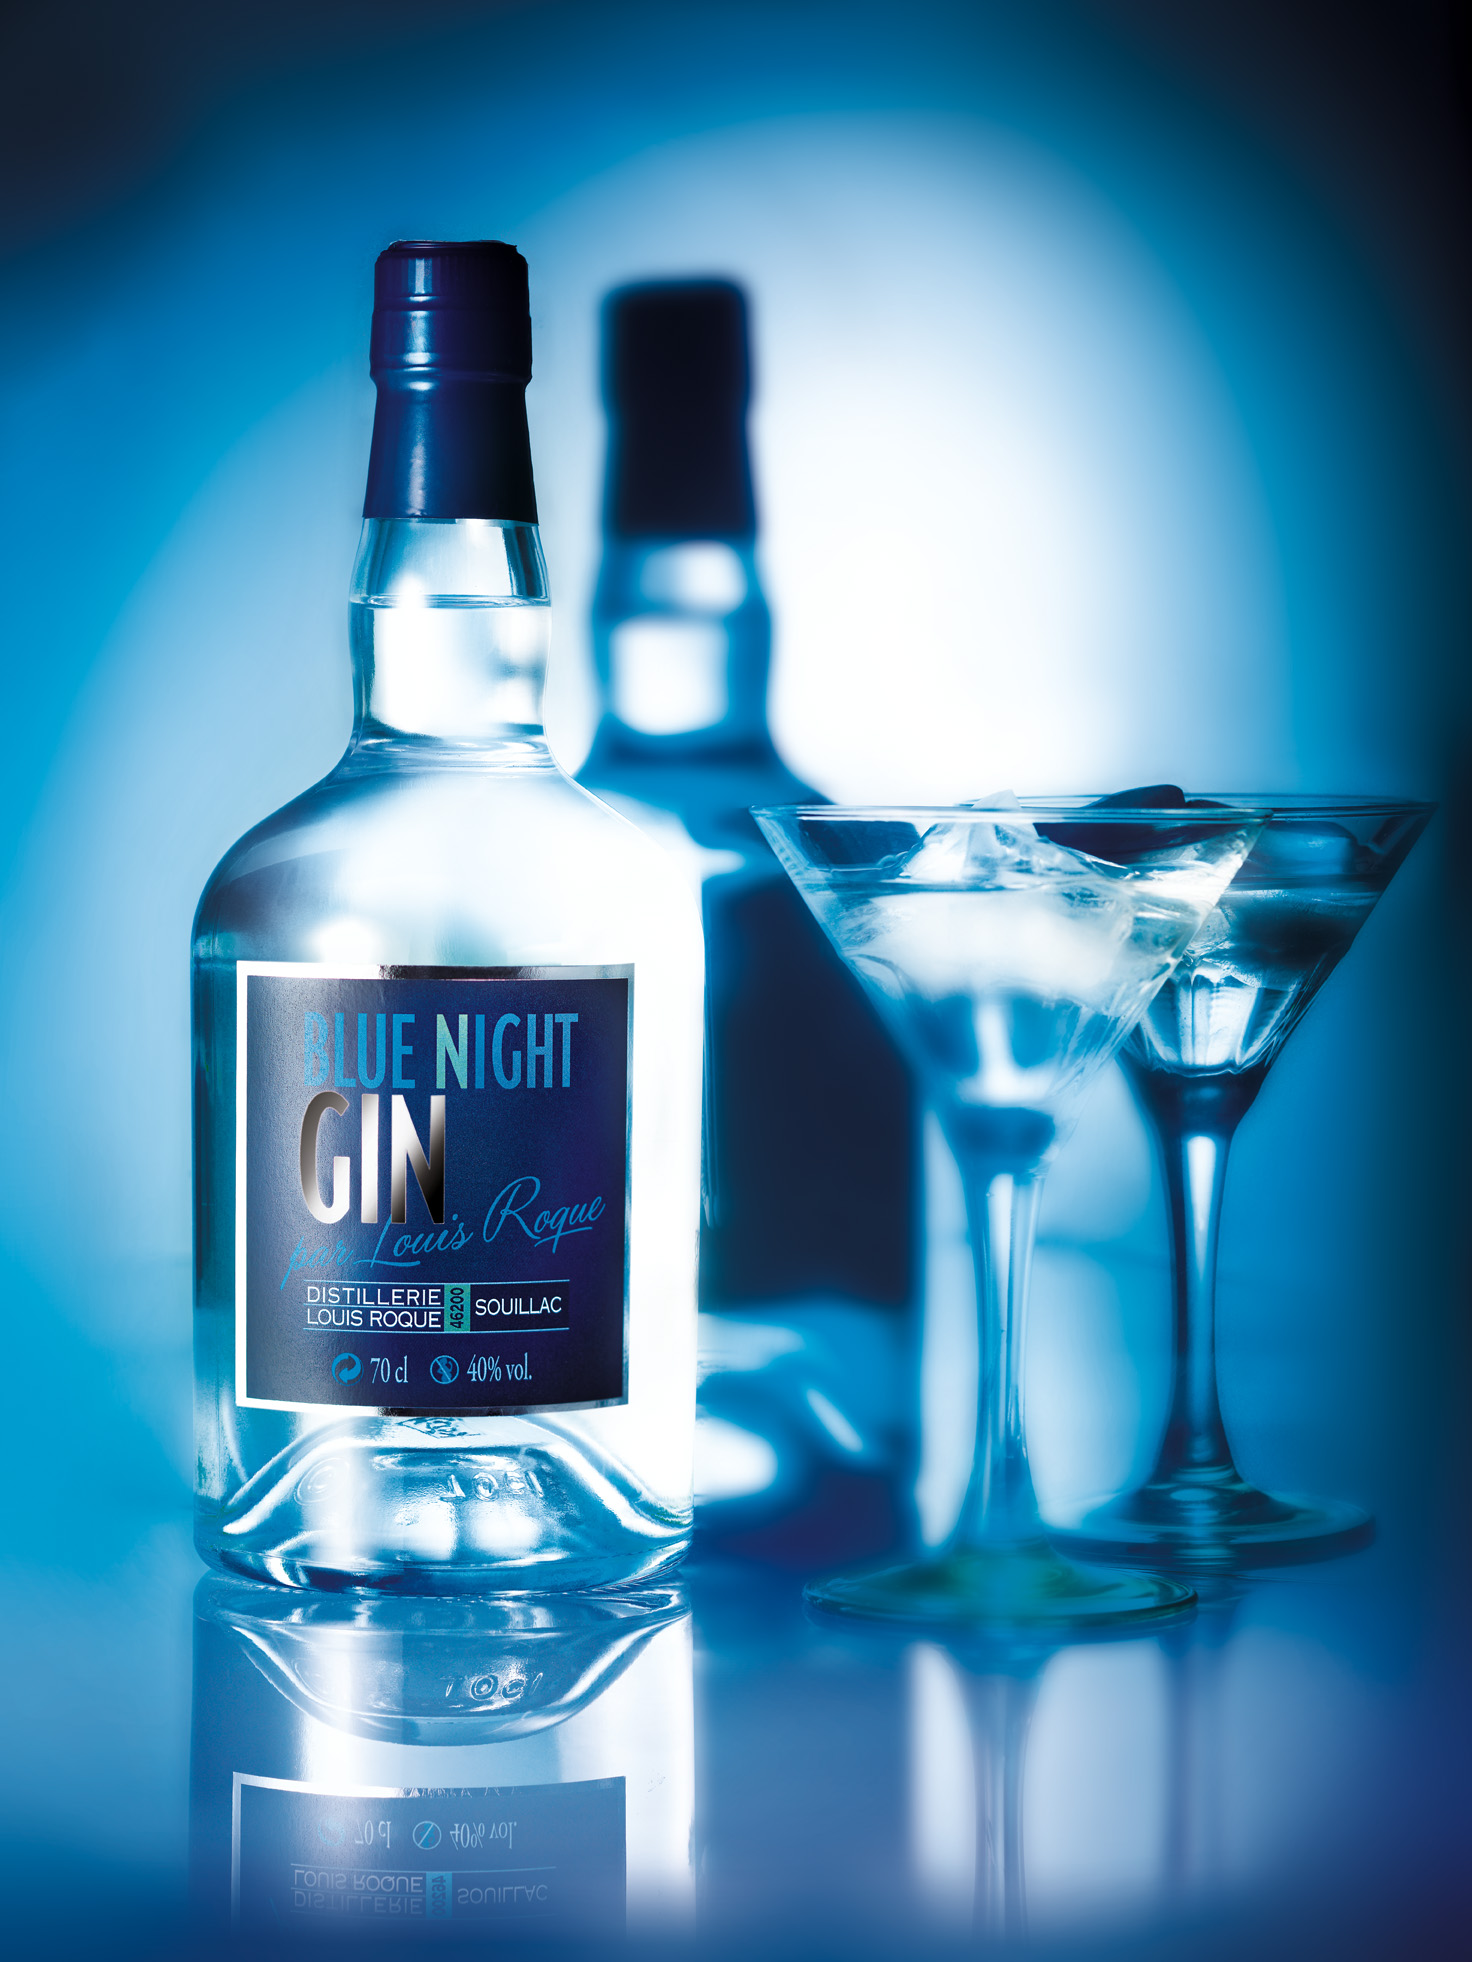 Blue Night Gin